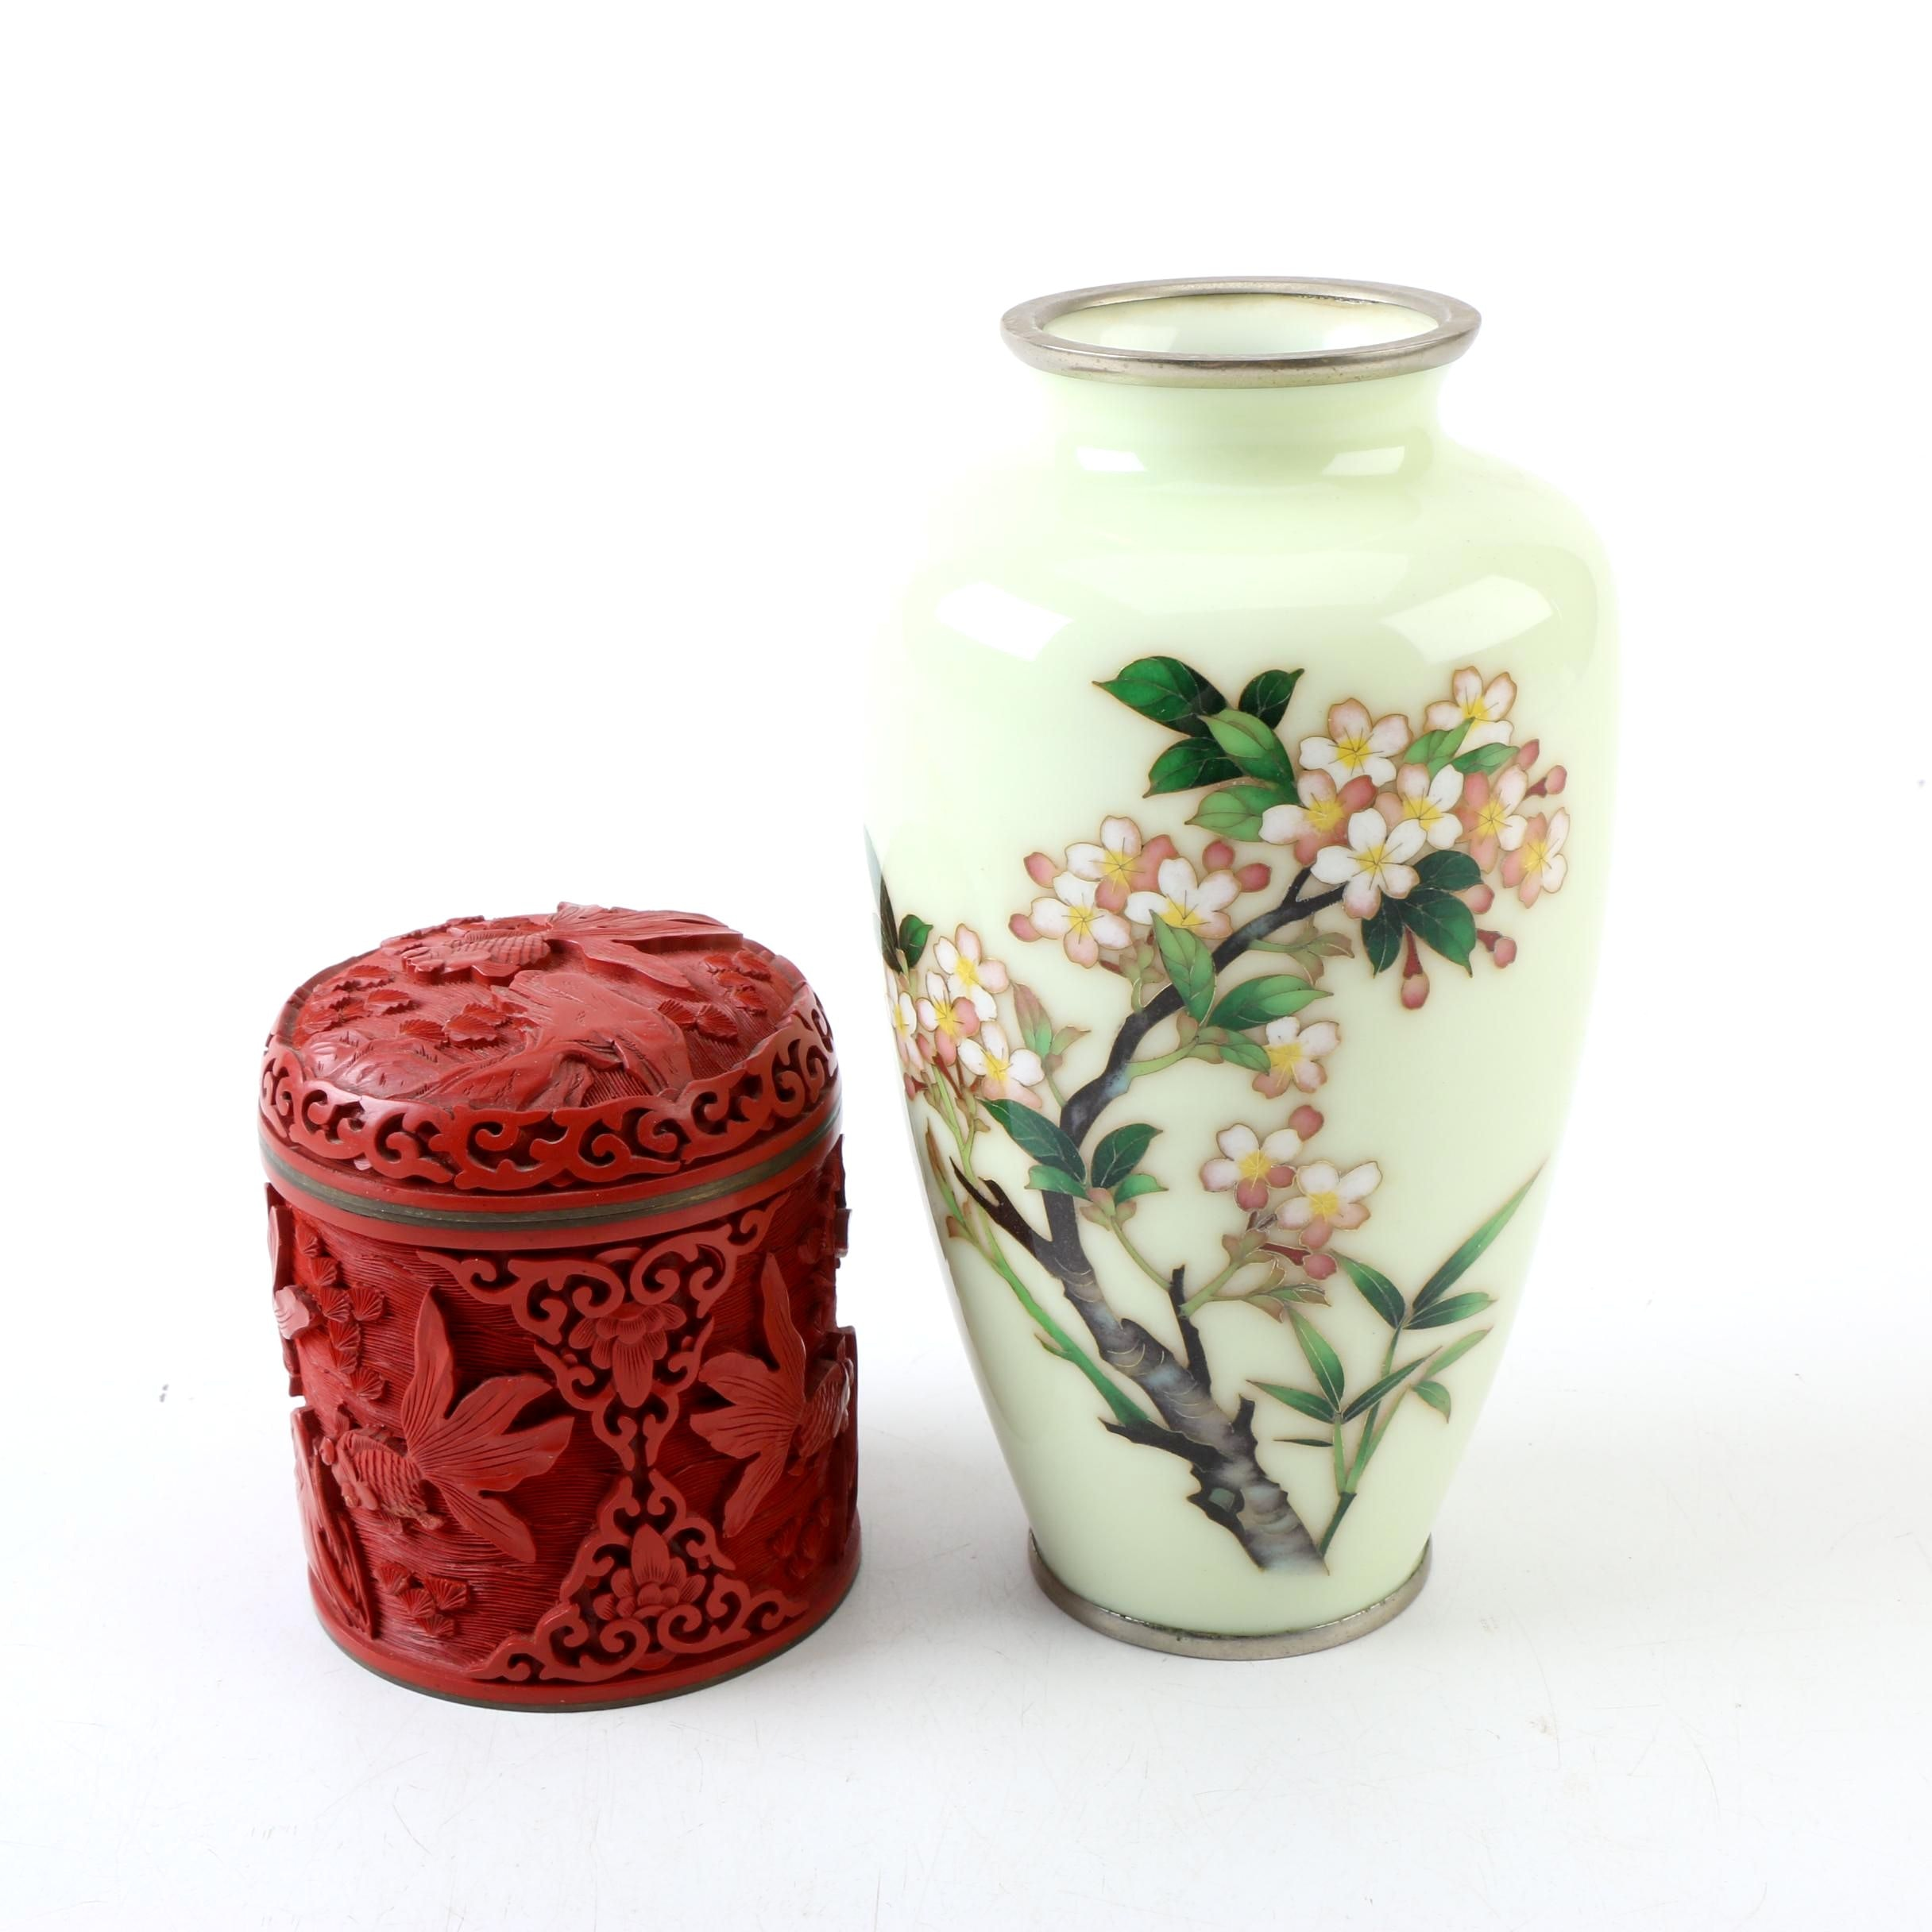 Chinese Carved Wood Box and Japanese Cloisonné Vase